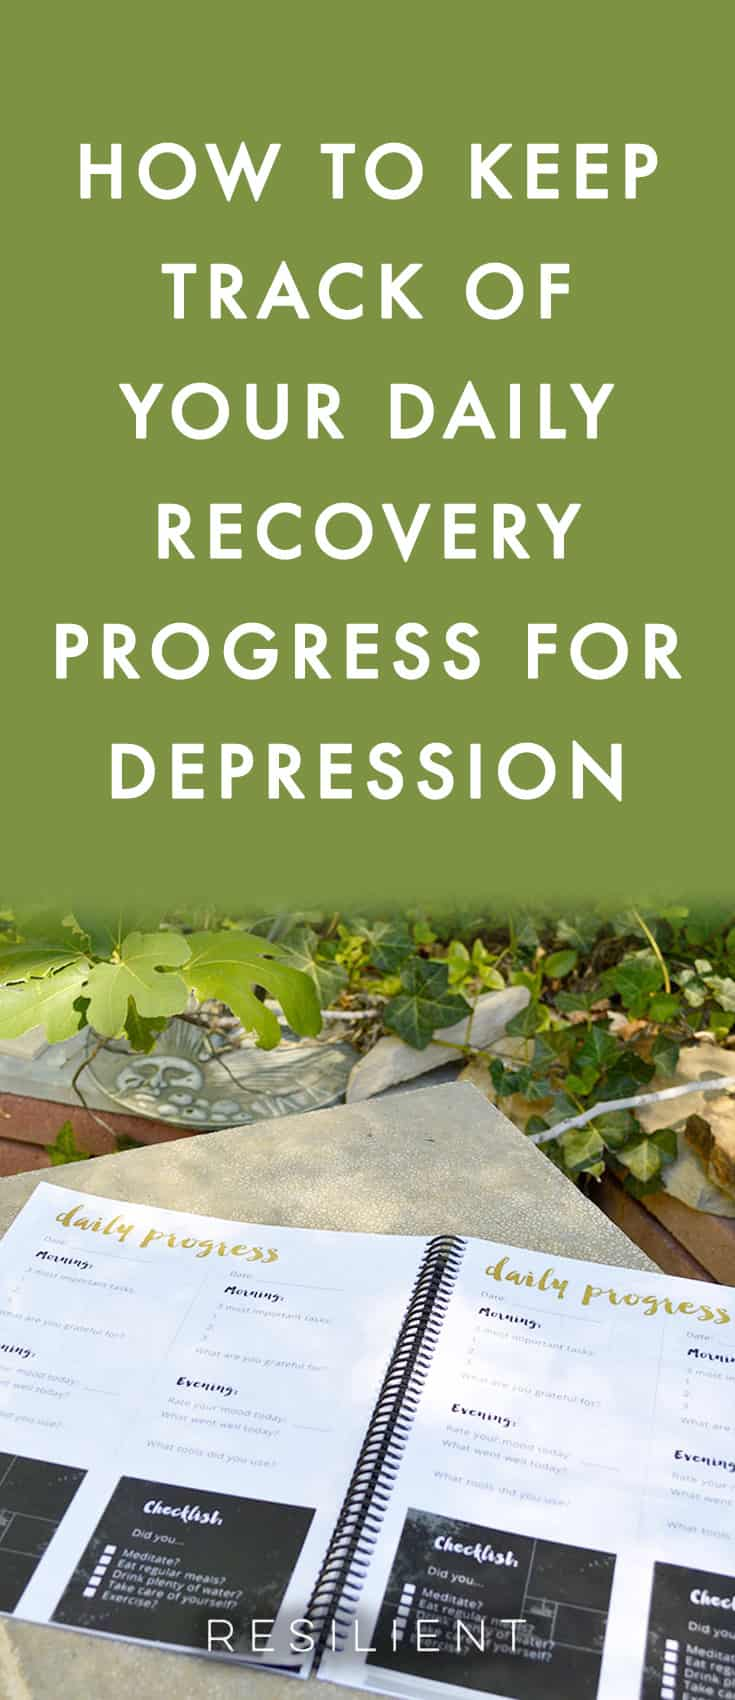 Are you looking for a way to keep track of your daily progress in recovering from depression?  Use our Recovery Diary to keep track of your recovery progress for depression and anxiety.